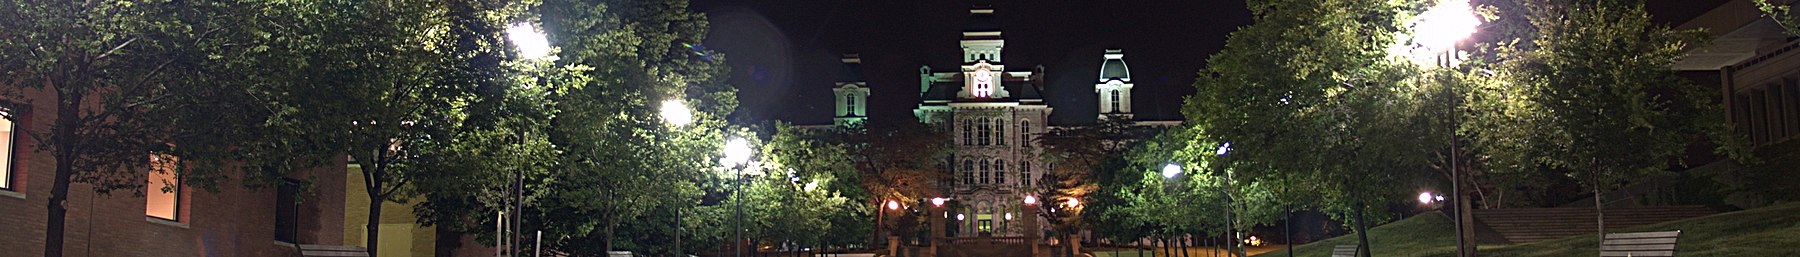 Syracuse University - Hall of Languages After Dark - banner.jpg